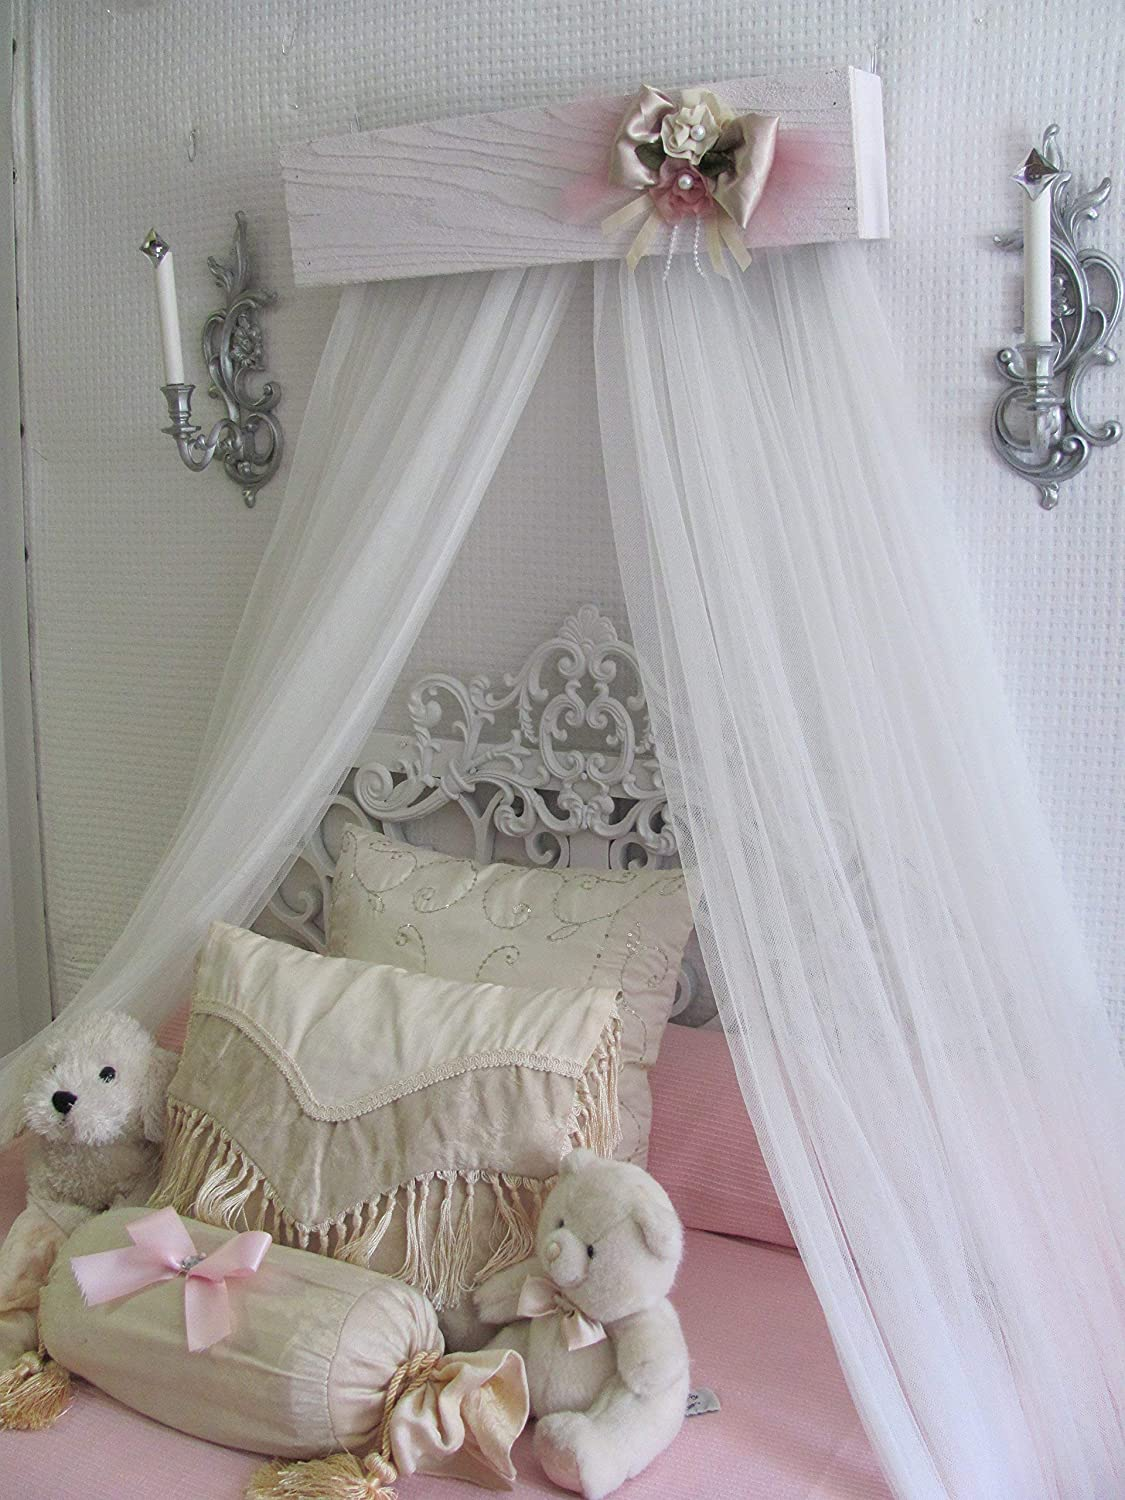 Princess Bed Crown Canopy Crib Baby Nursery Decor Shabby Chic Princess Girls Bedroom Free White Curtains Vintage Inspired Chalk Paint So Zoey Boutique Sale Handmade Products Home Kitchen